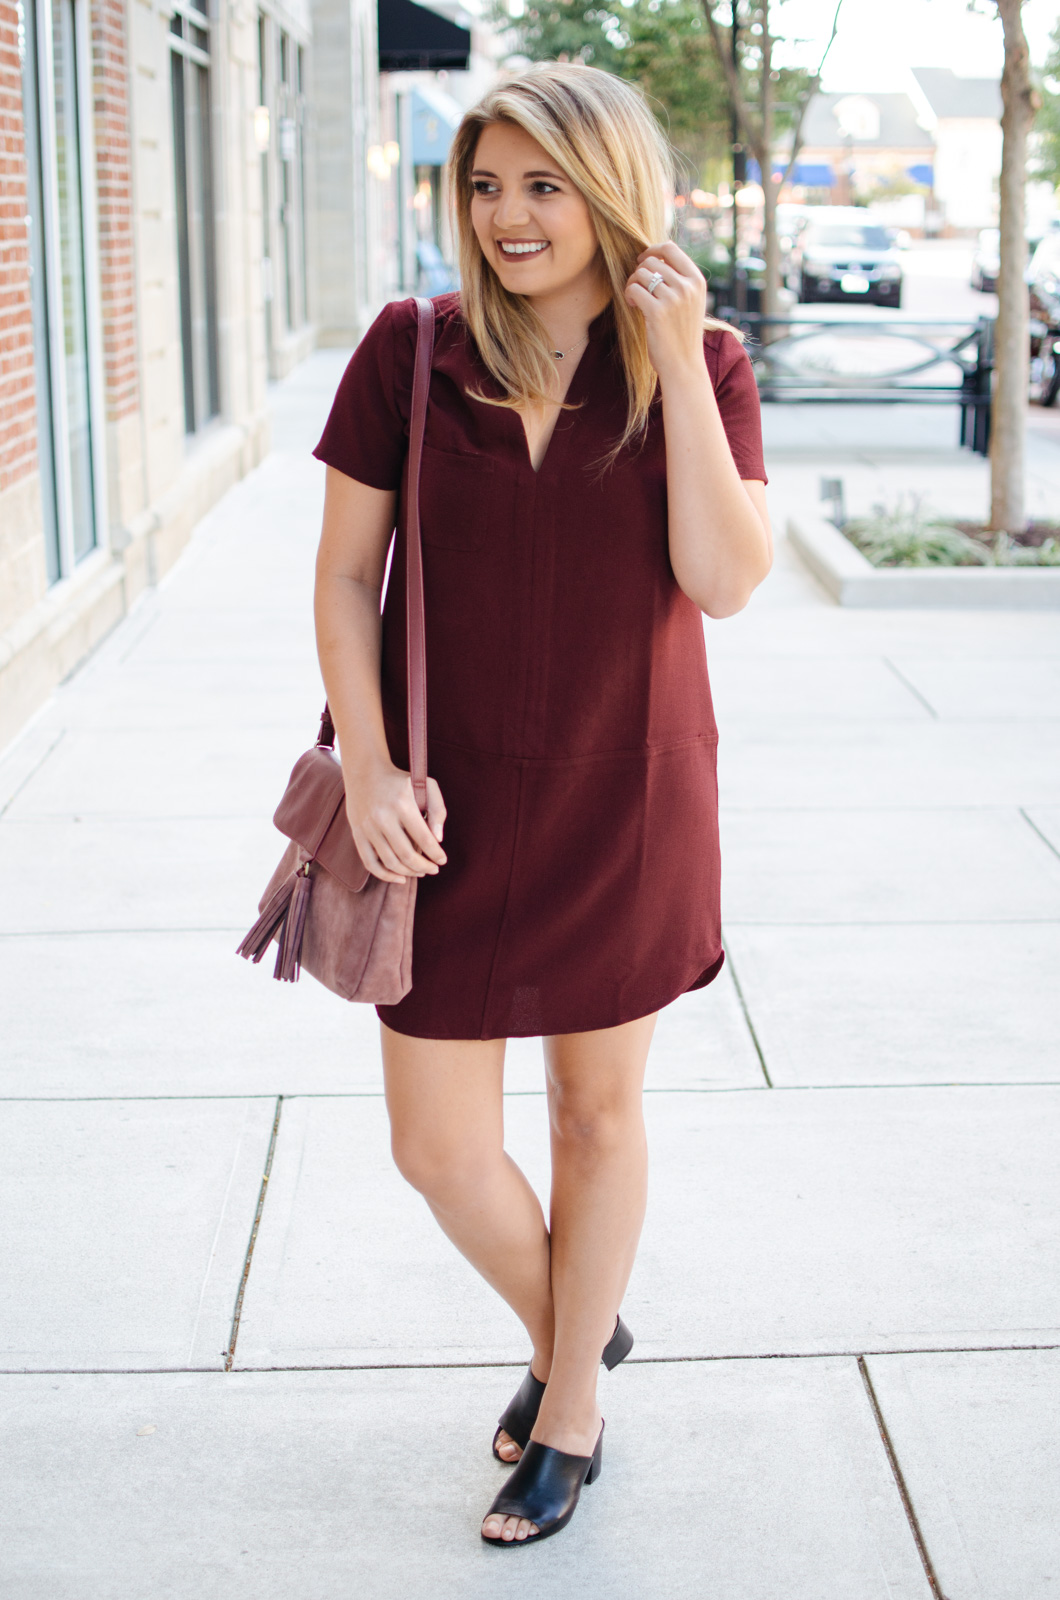 must-have fall dress | For more cute Fall transition outfits, click through to bylaurenm.com!